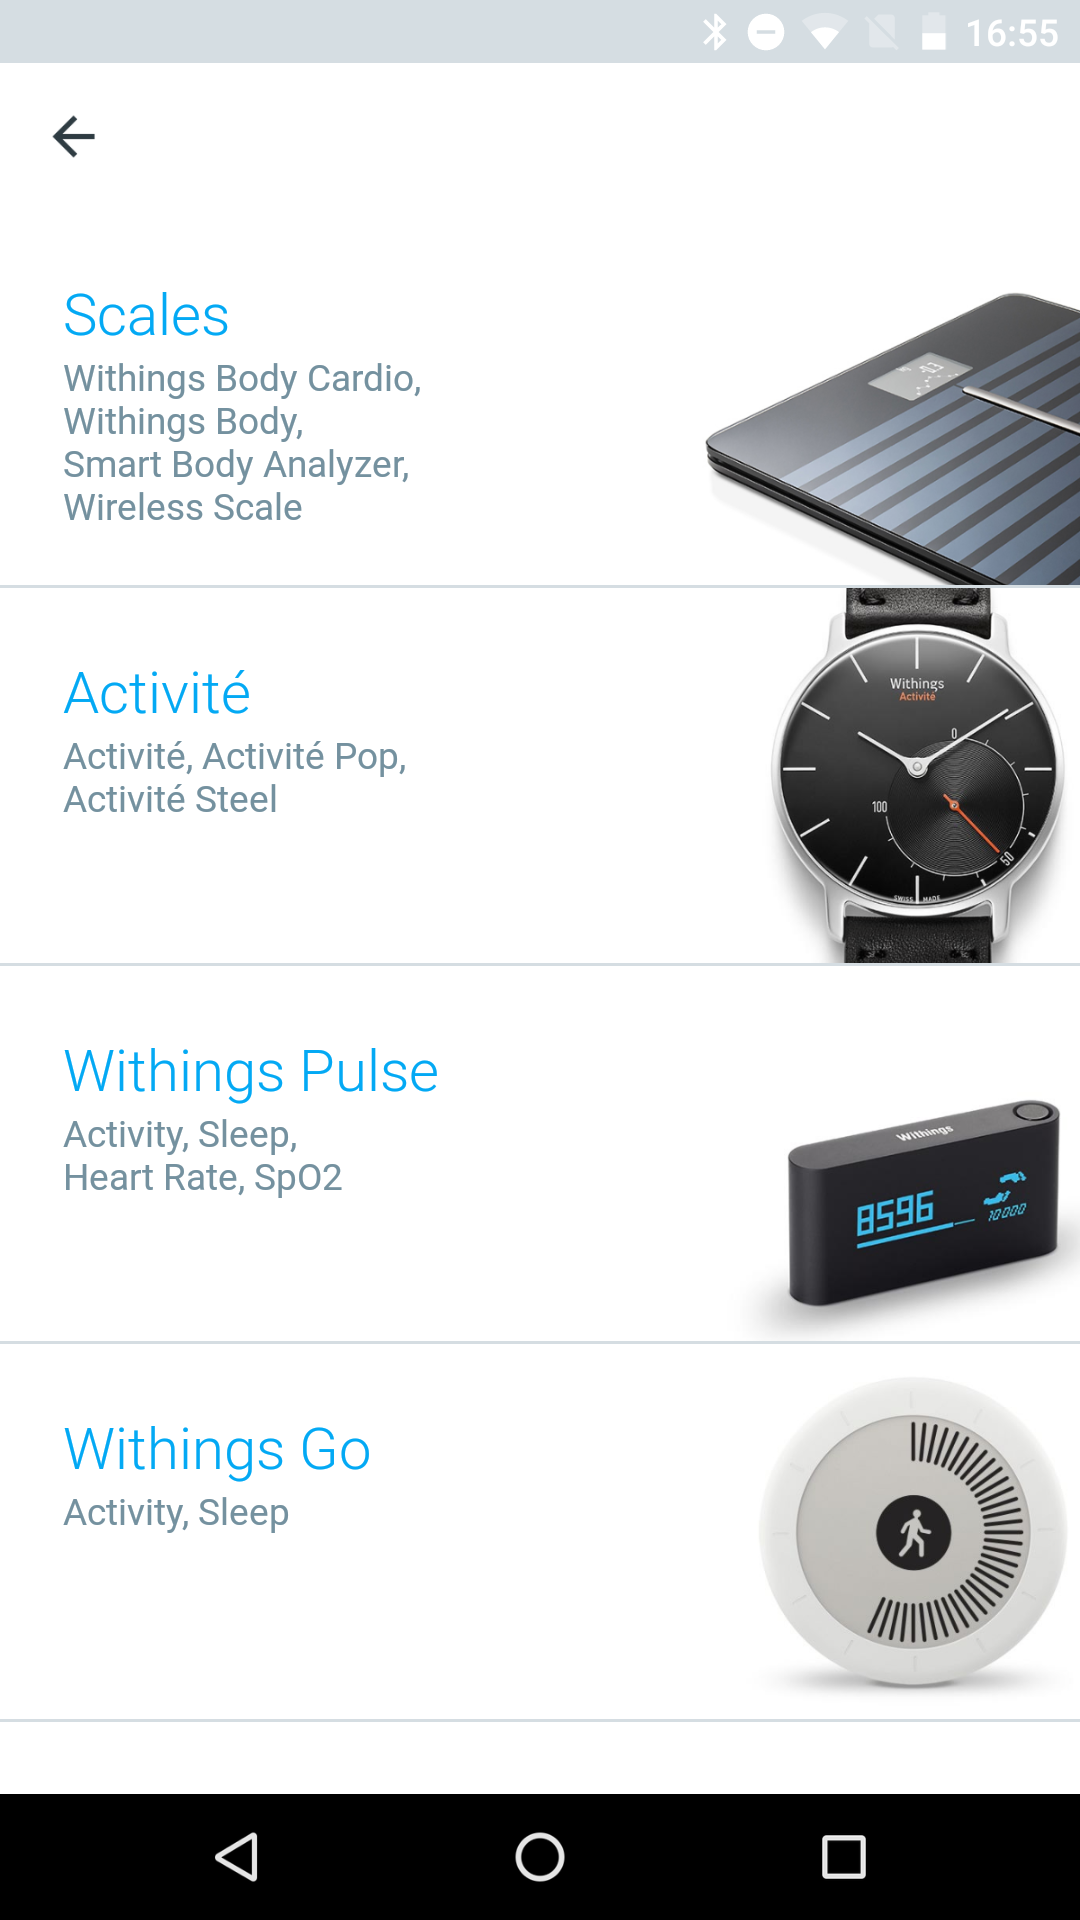 withings-body-cardio-setup-4